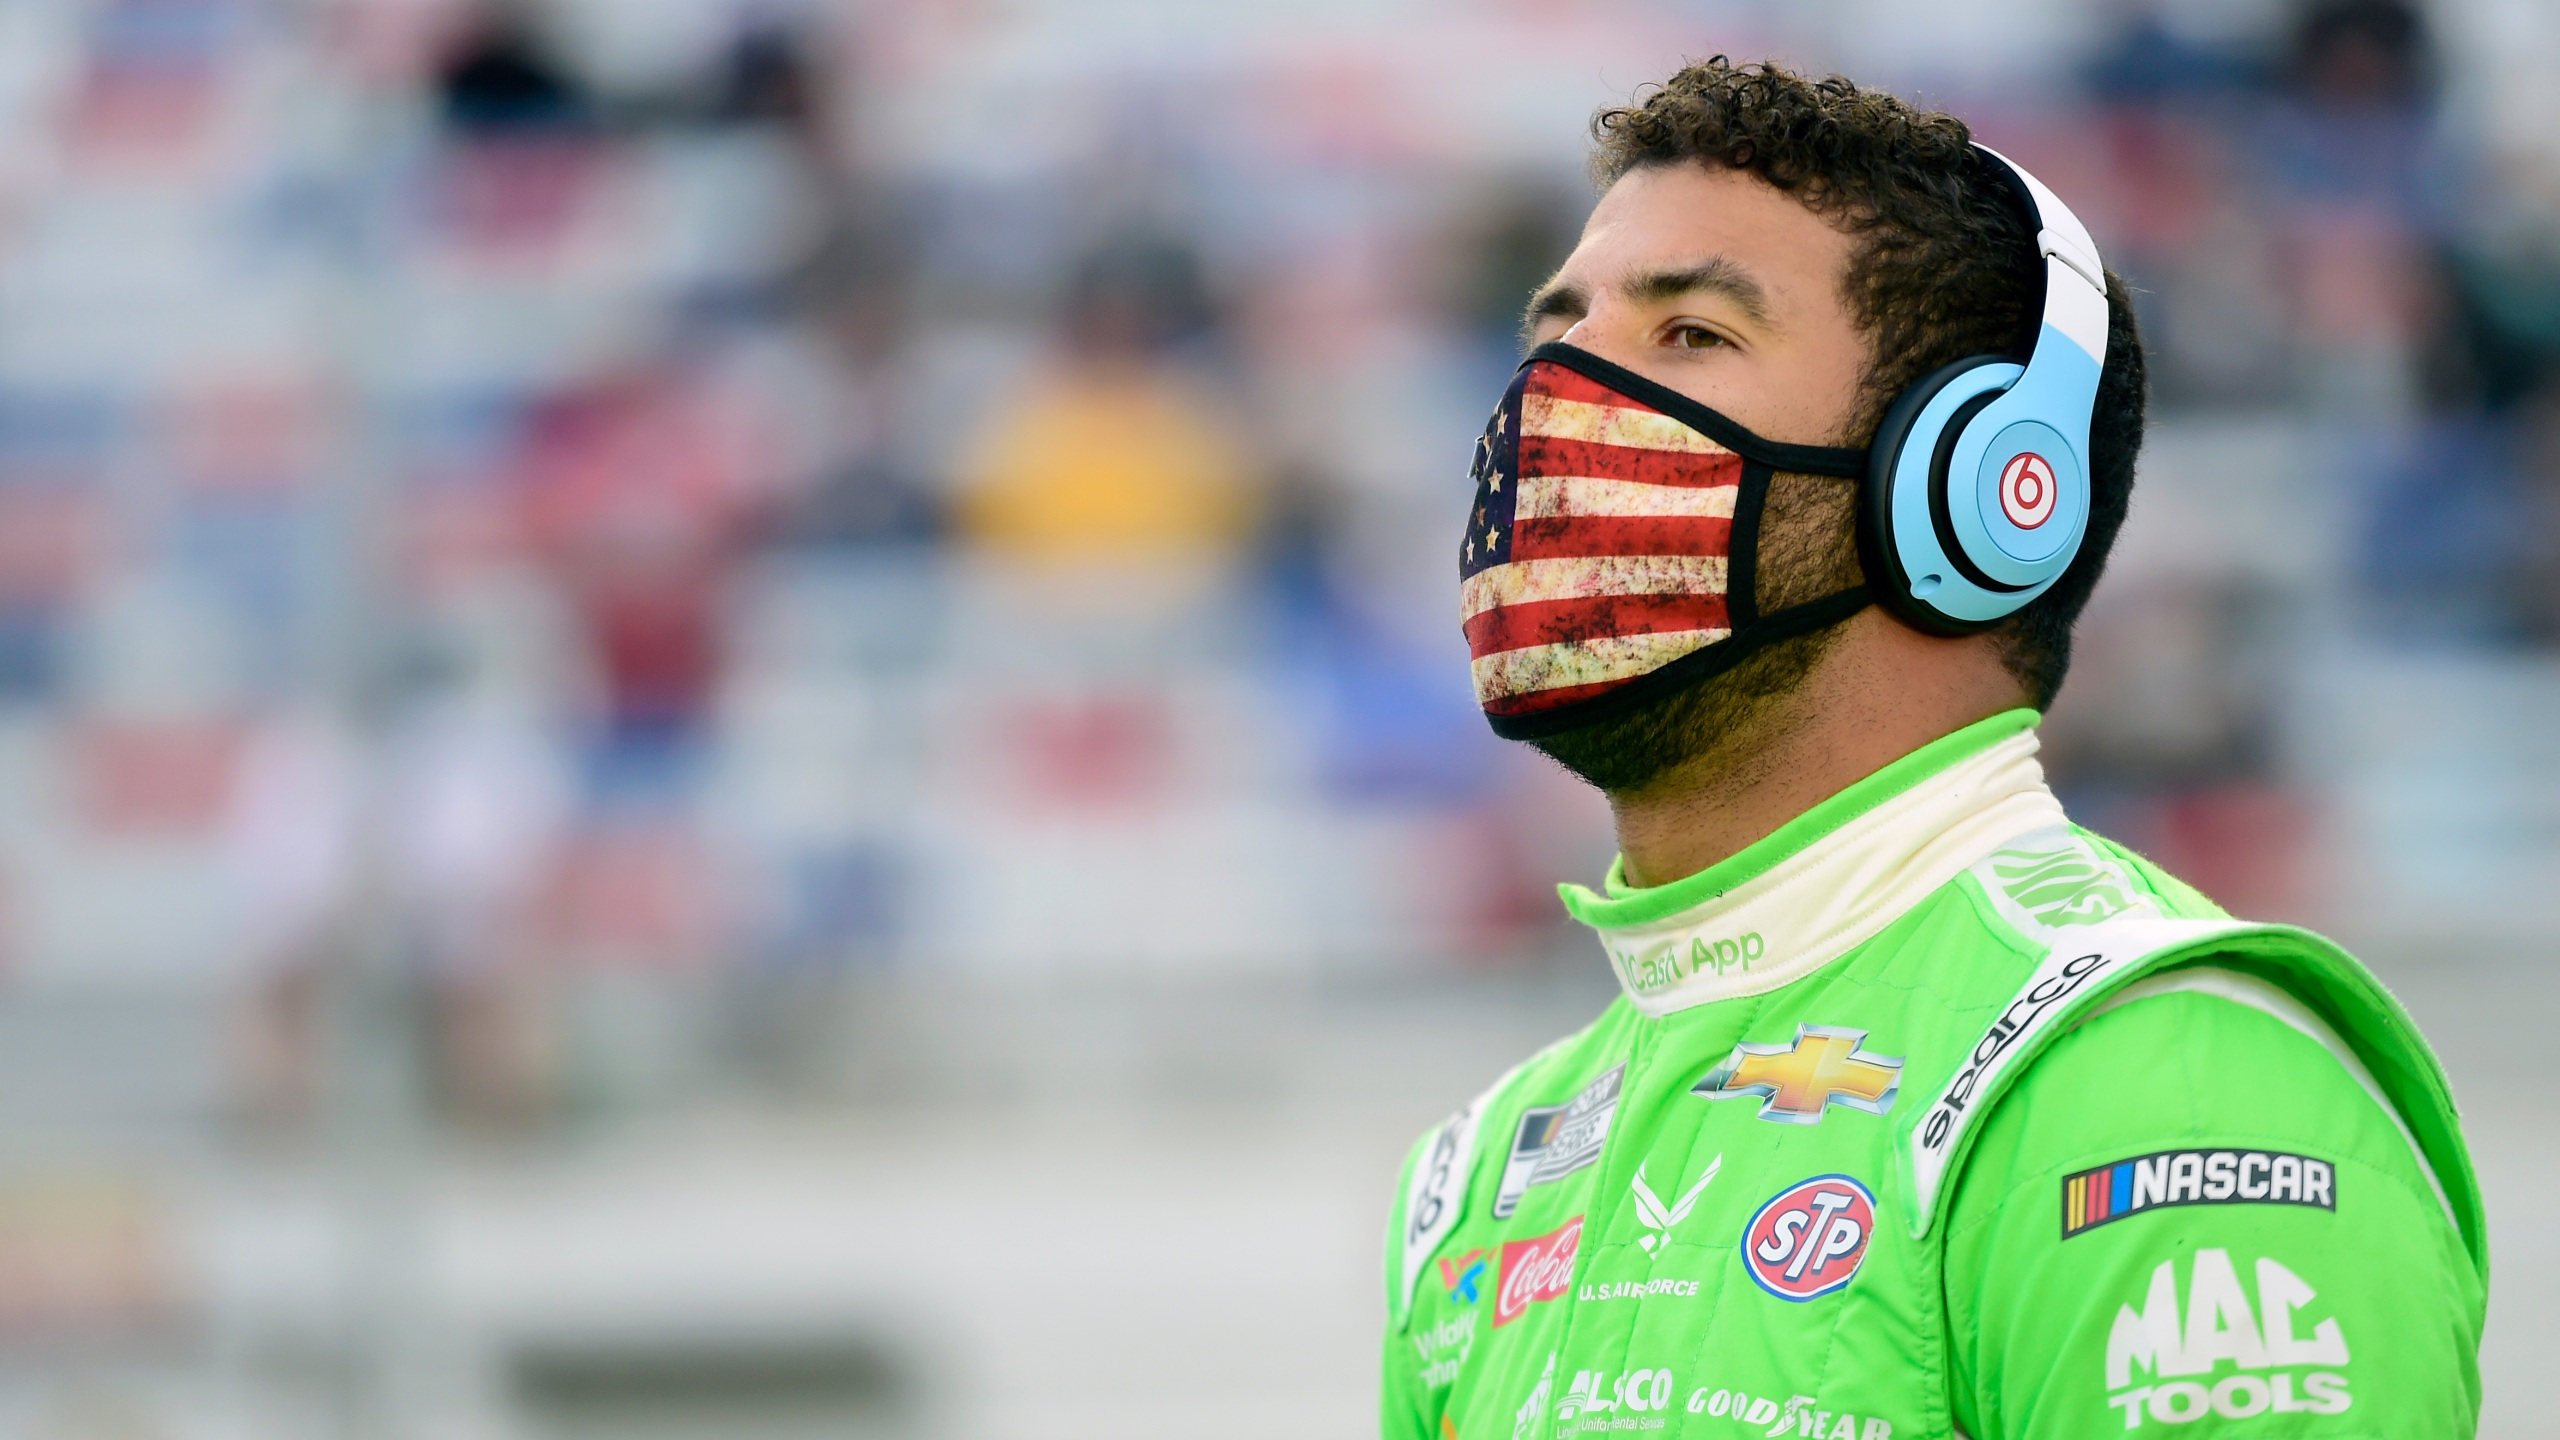 Bubba Wallace, driver of the #43 Cash App Chevrolet